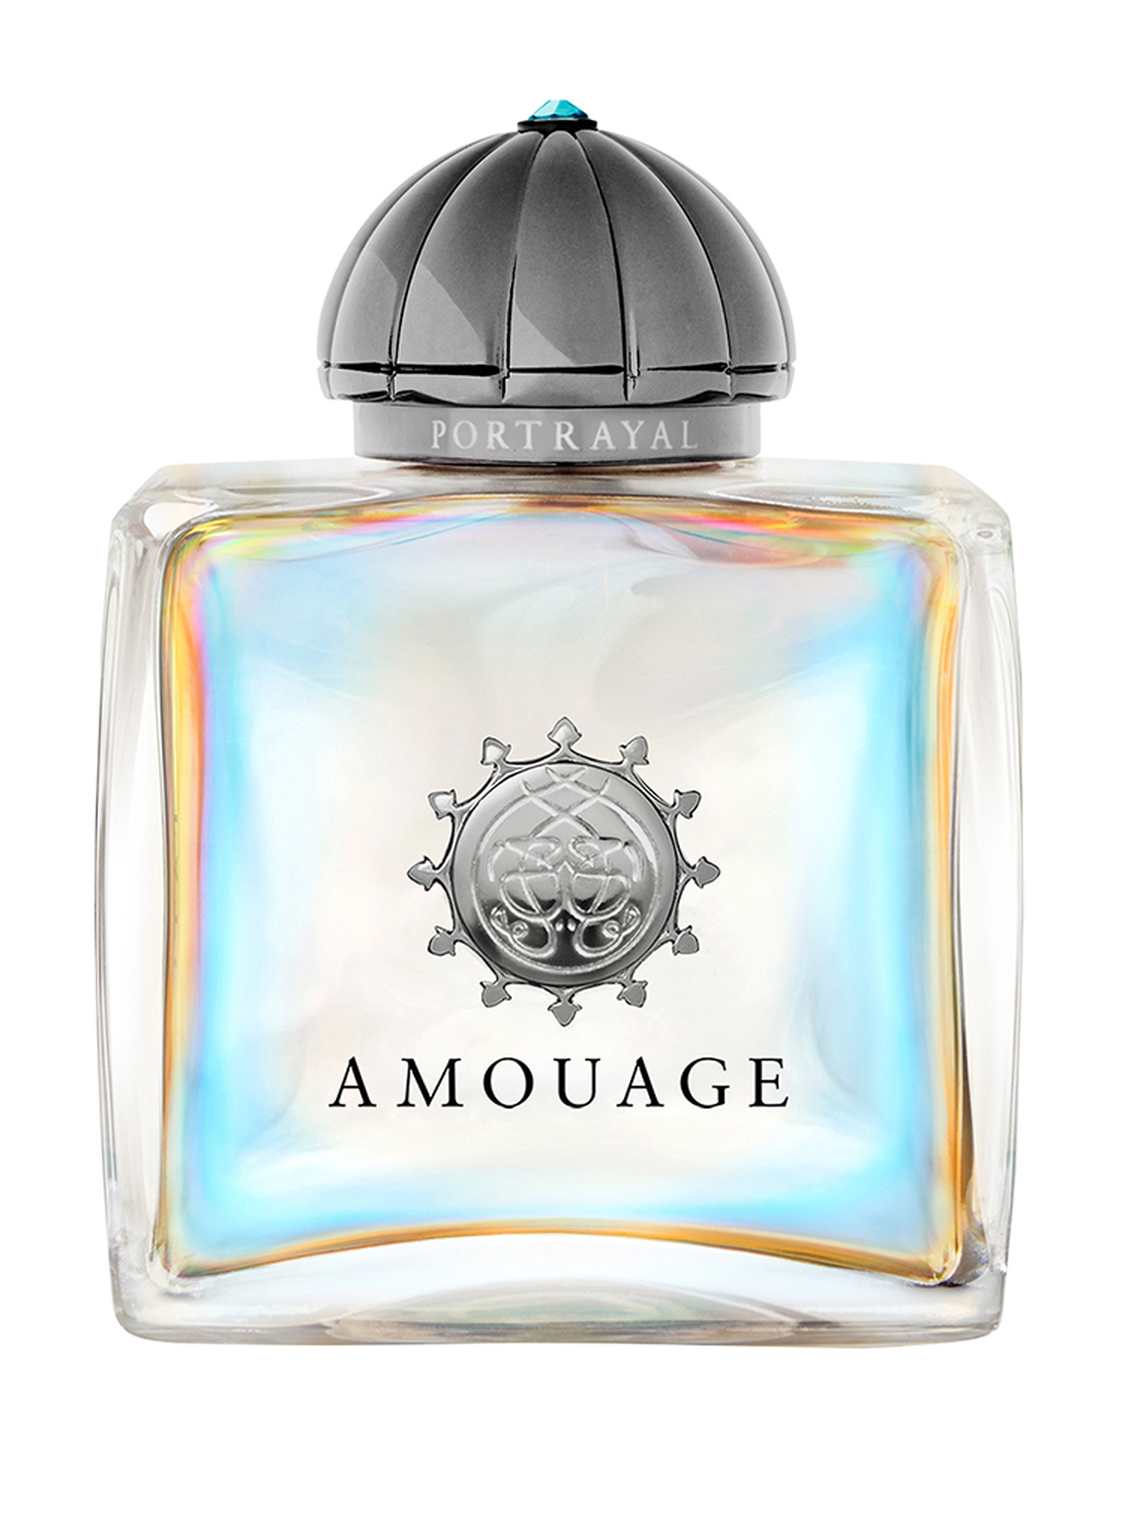 Amouage Portrayal Woman Eau de Parfum 50 ml von AMOUAGE